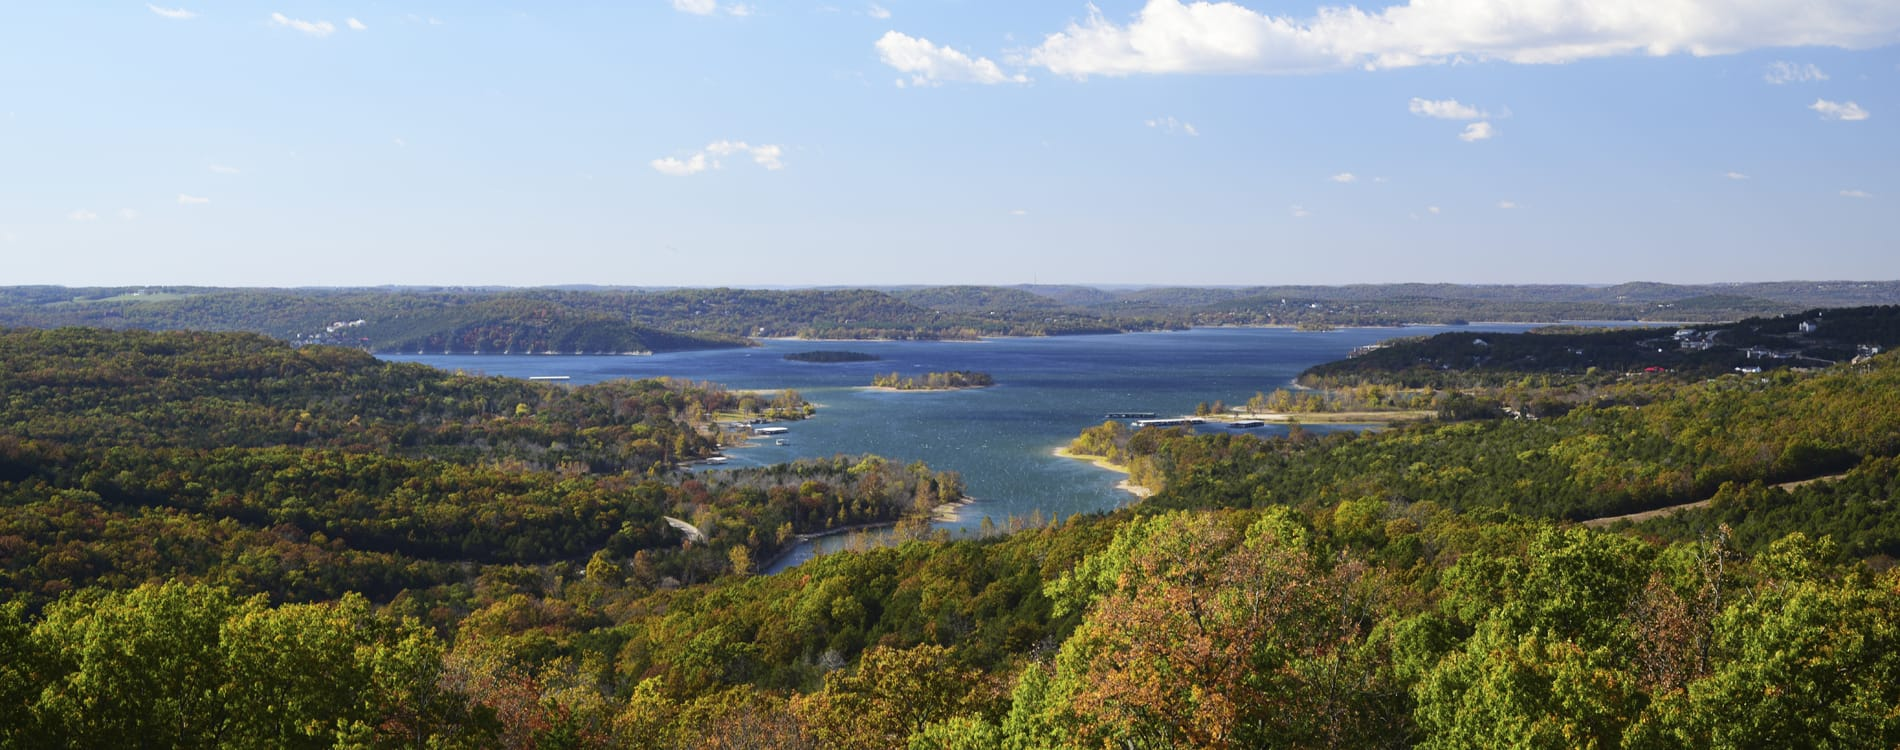 Branson, MO - Table Rock Lake